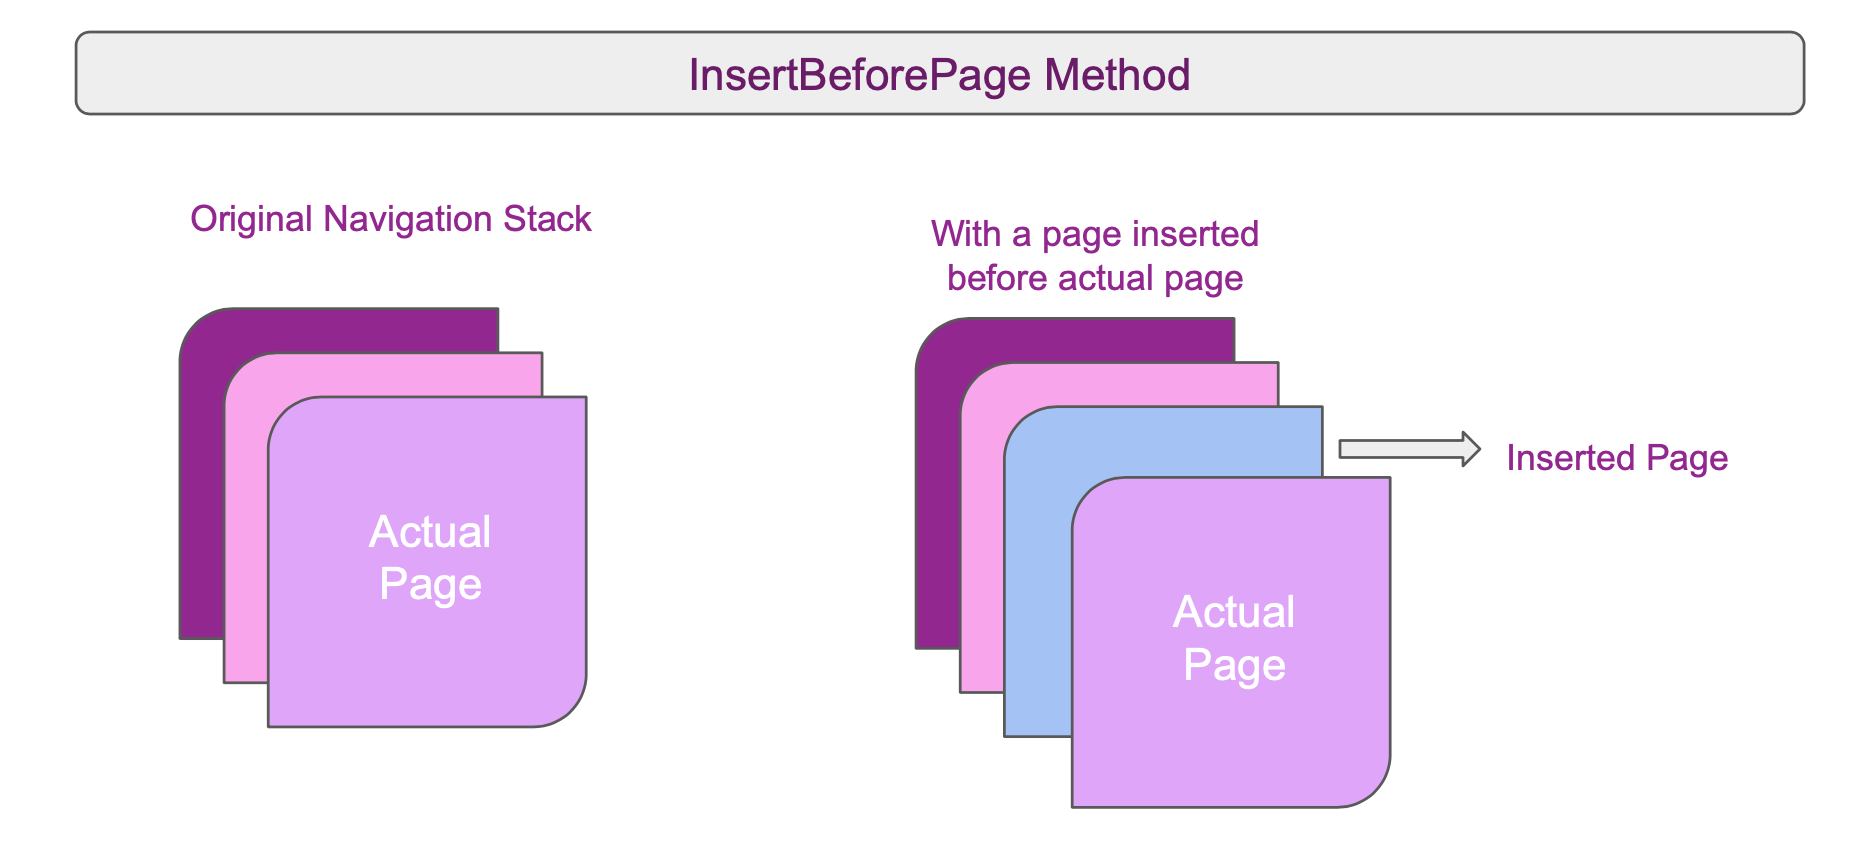 """Original navigation"" stack shows three pages, with Actual Page on the top. ""With a page inserted before actual page"" shows the same stack with an added page behind Actual Page labeled ""Inserted page""."